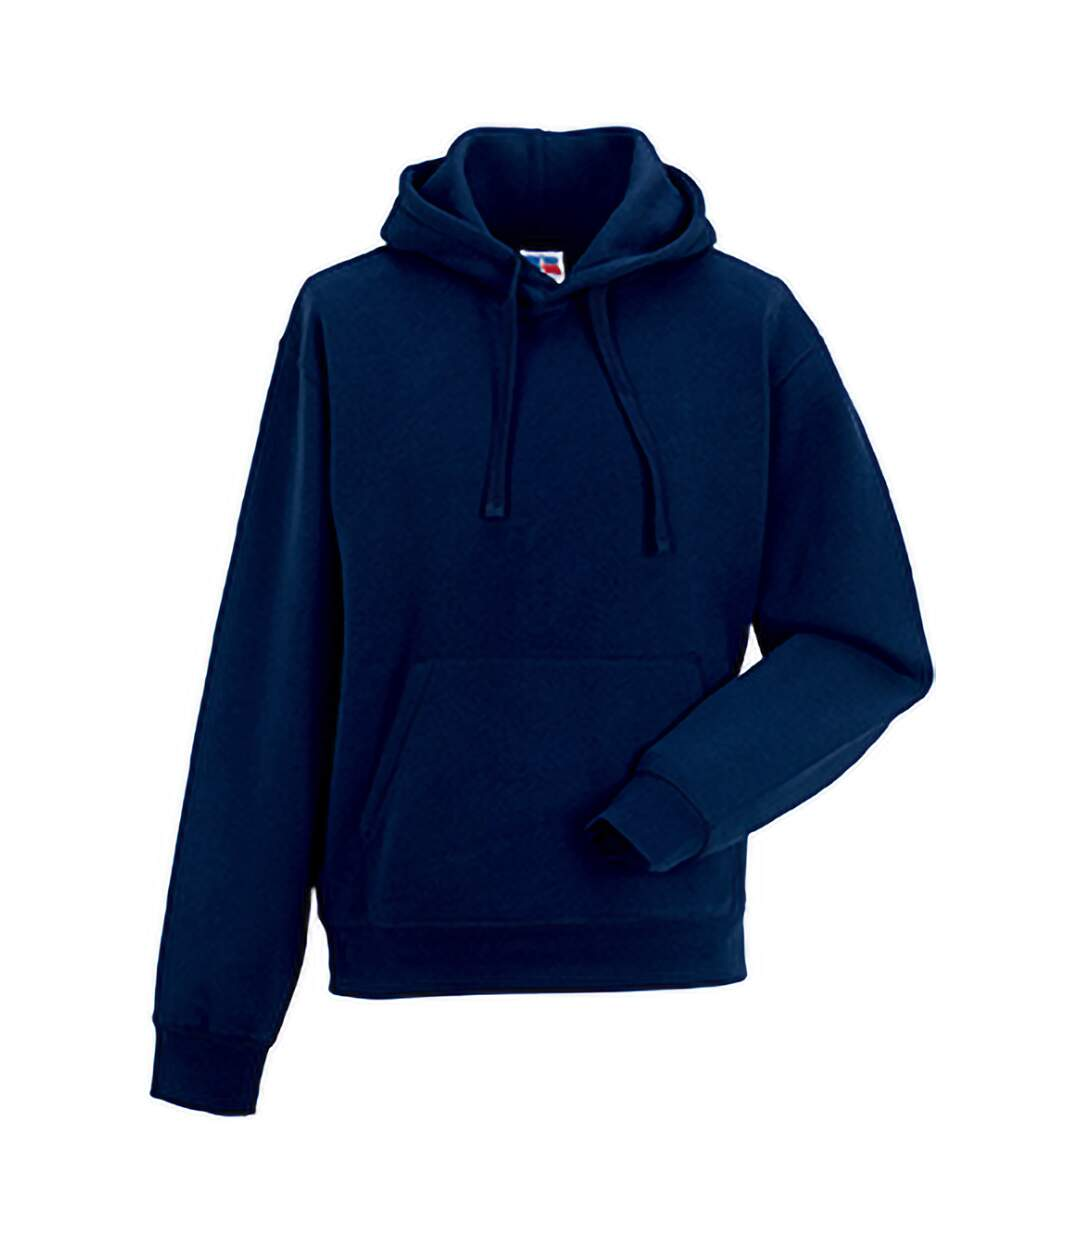 Russell Mens Authentic Hooded Sweatshirt / Hoodie (French Navy) - UTBC1498